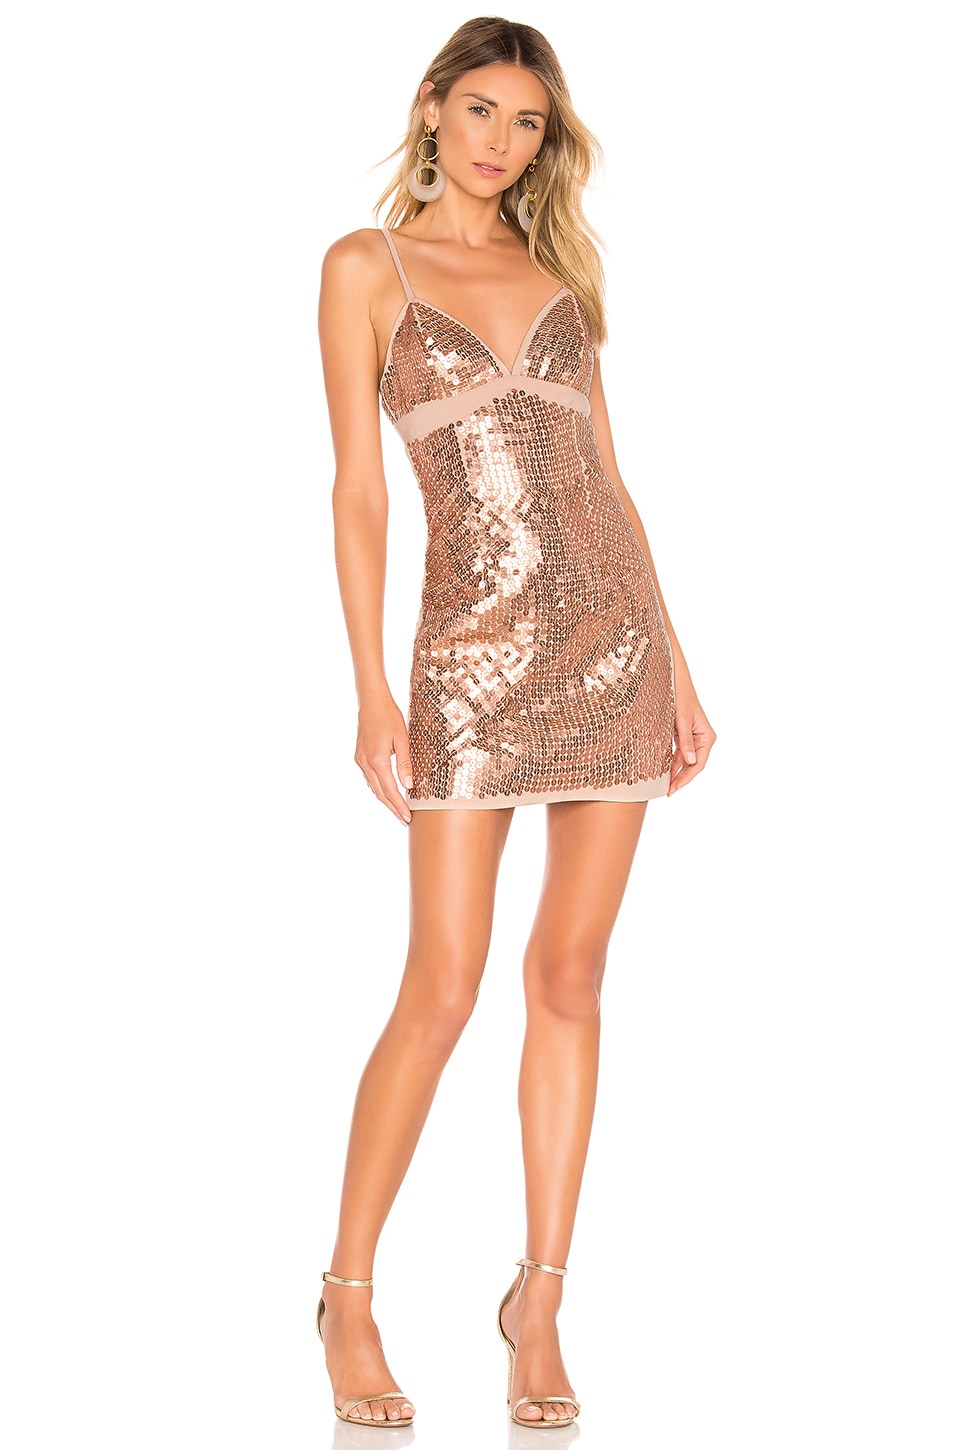 X By Nbd Shain Embellished Mini Dress In Nude Rose Gold Revolve